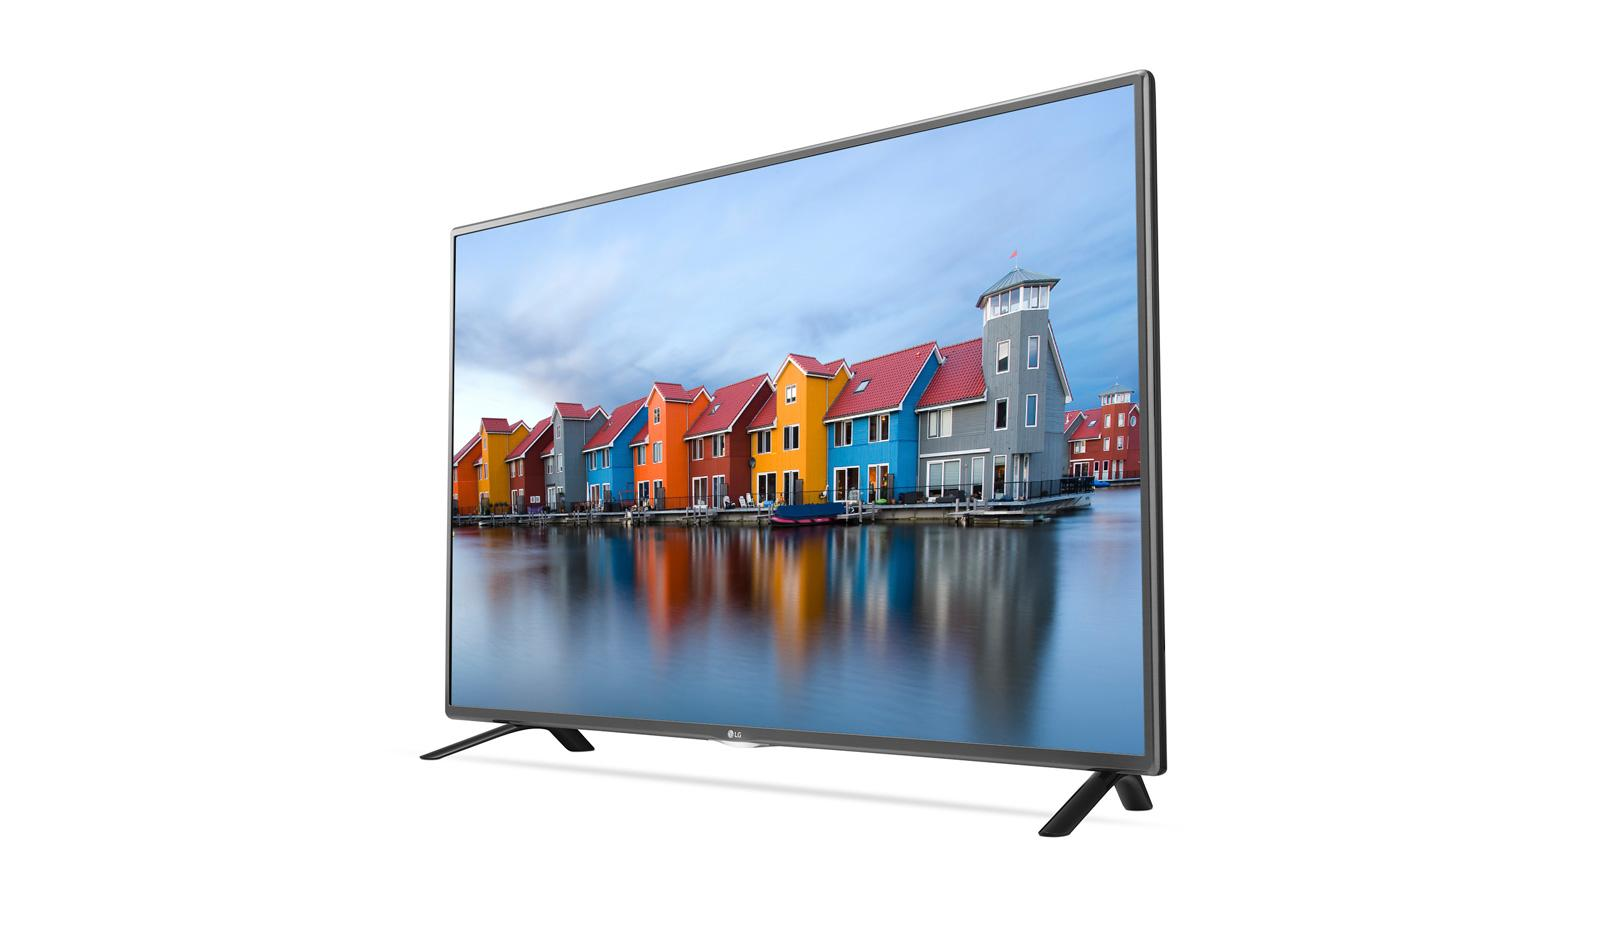 Lg 42lf5600 42 Class 419 Diagonal 1080p Led Tv Usa Tvs Together With Samsung Inch Plasma Circuit Boards On